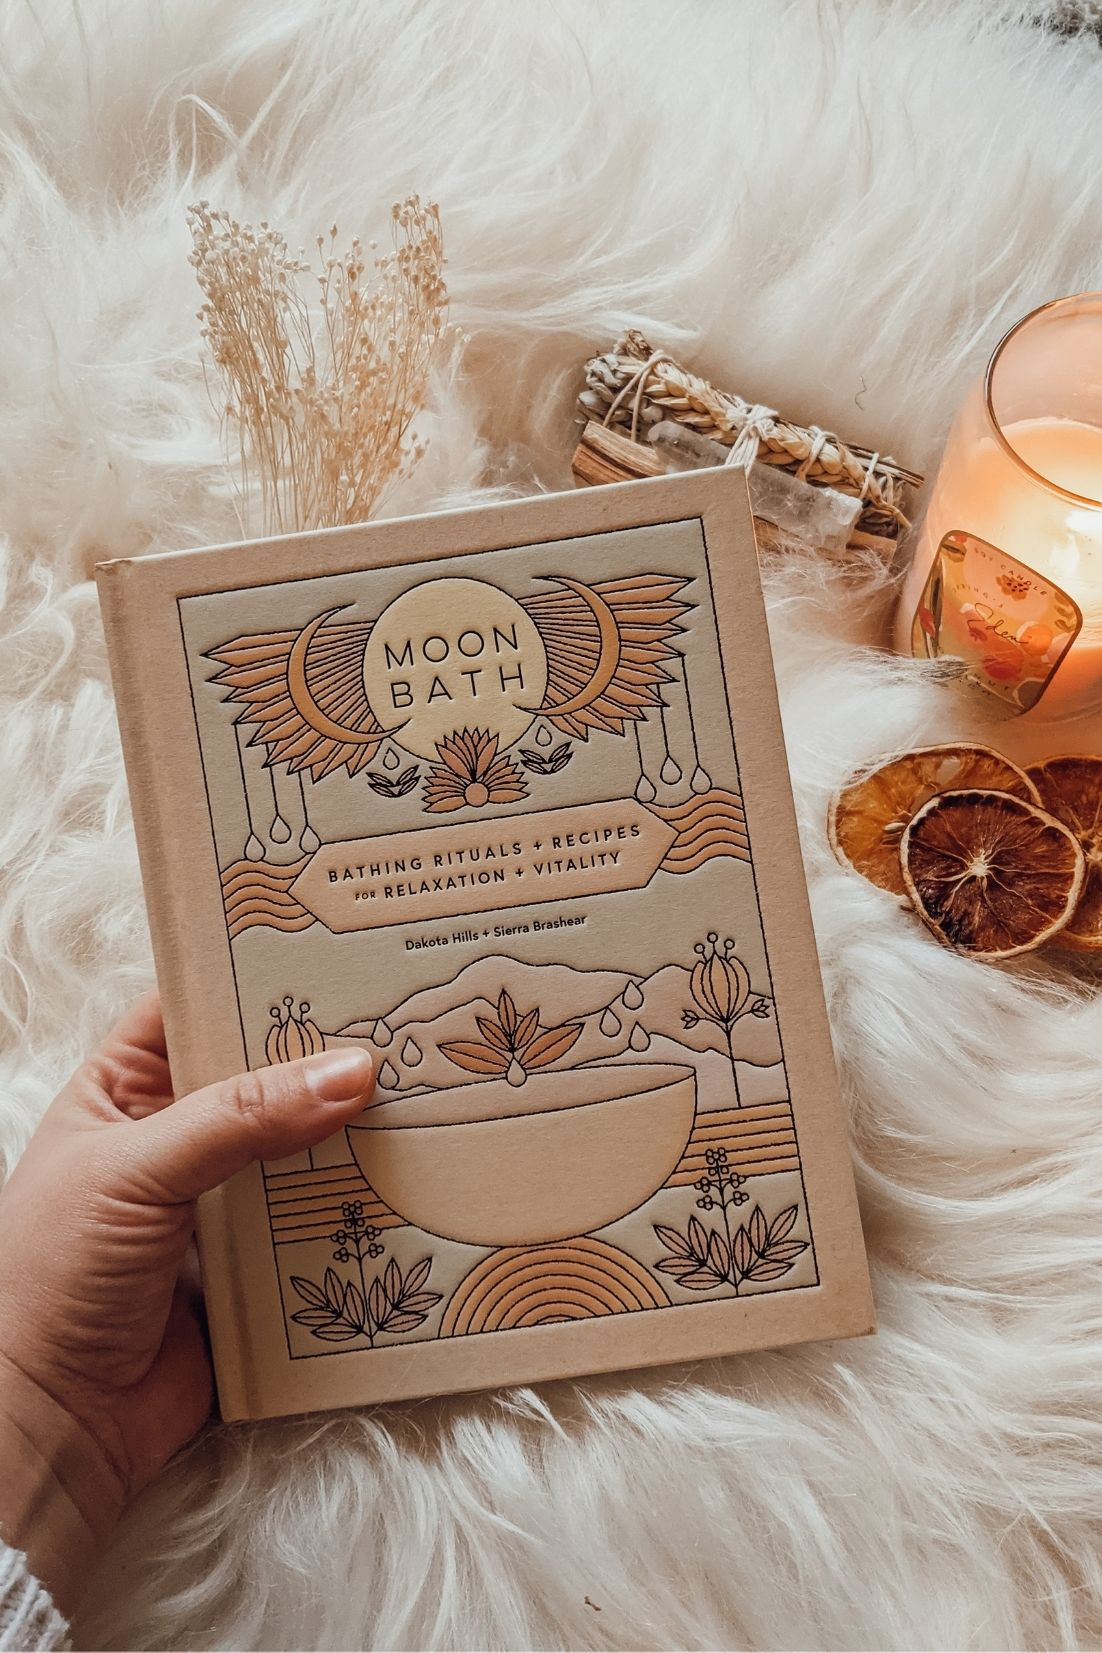 Moon Bath Book